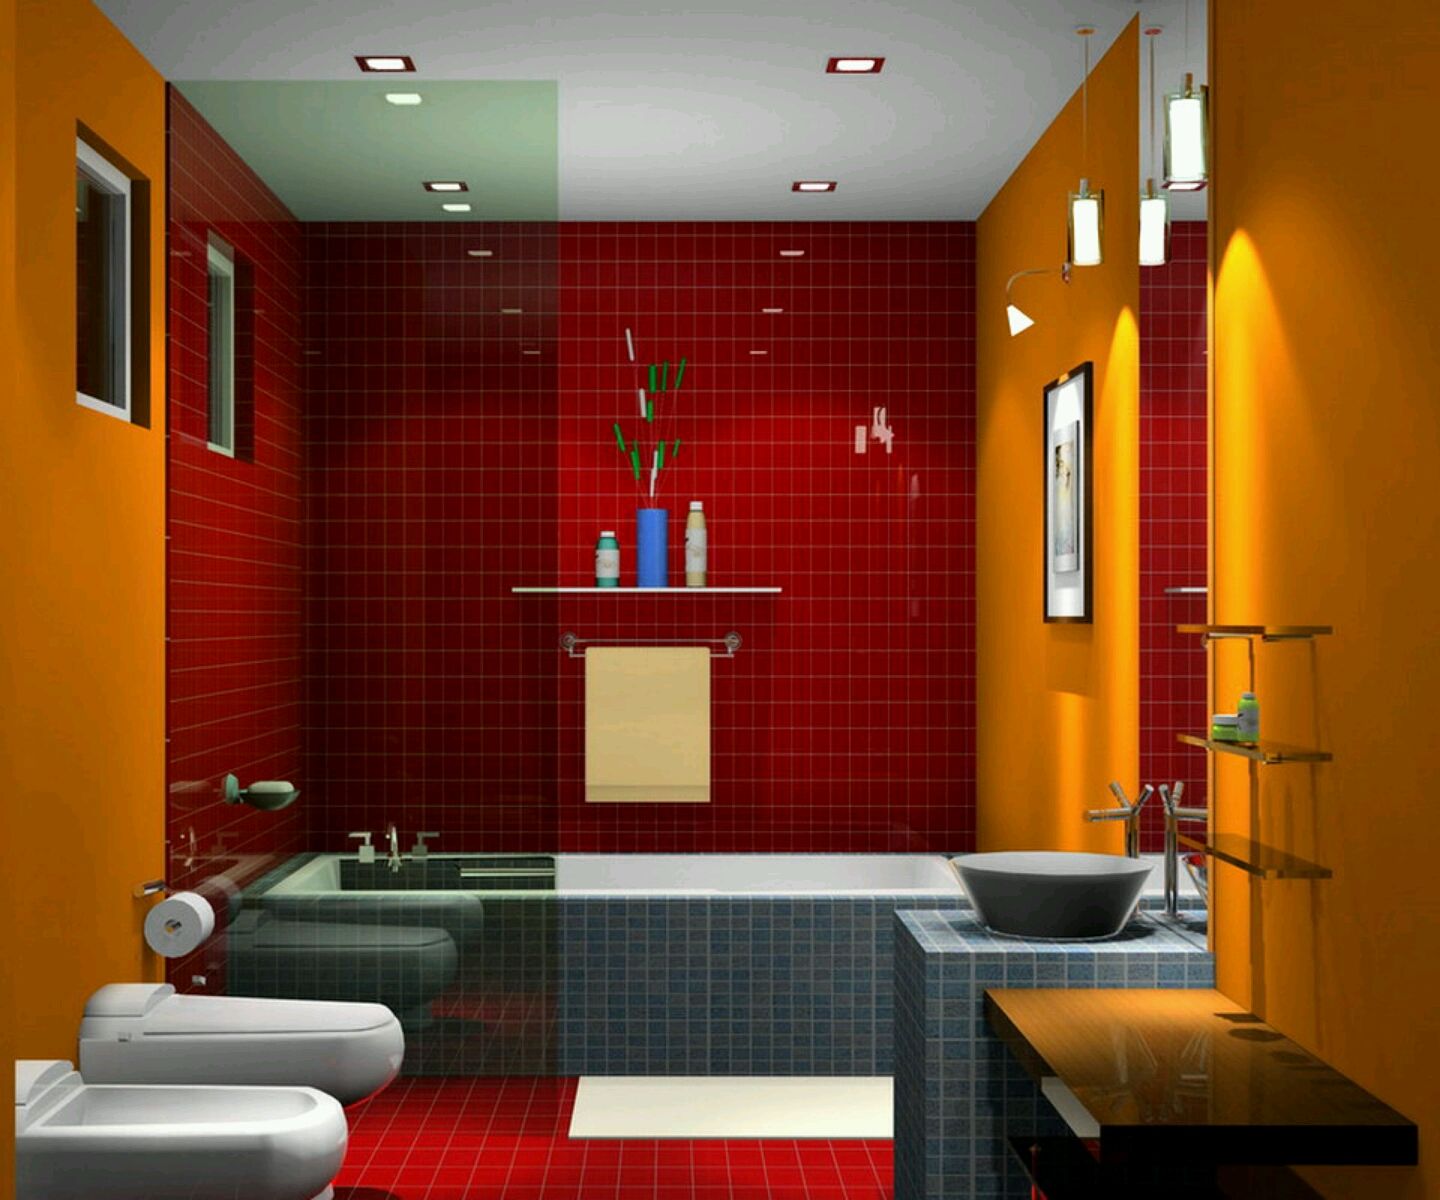 New home designs latest luxury bathrooms designs ideas for New washroom designs